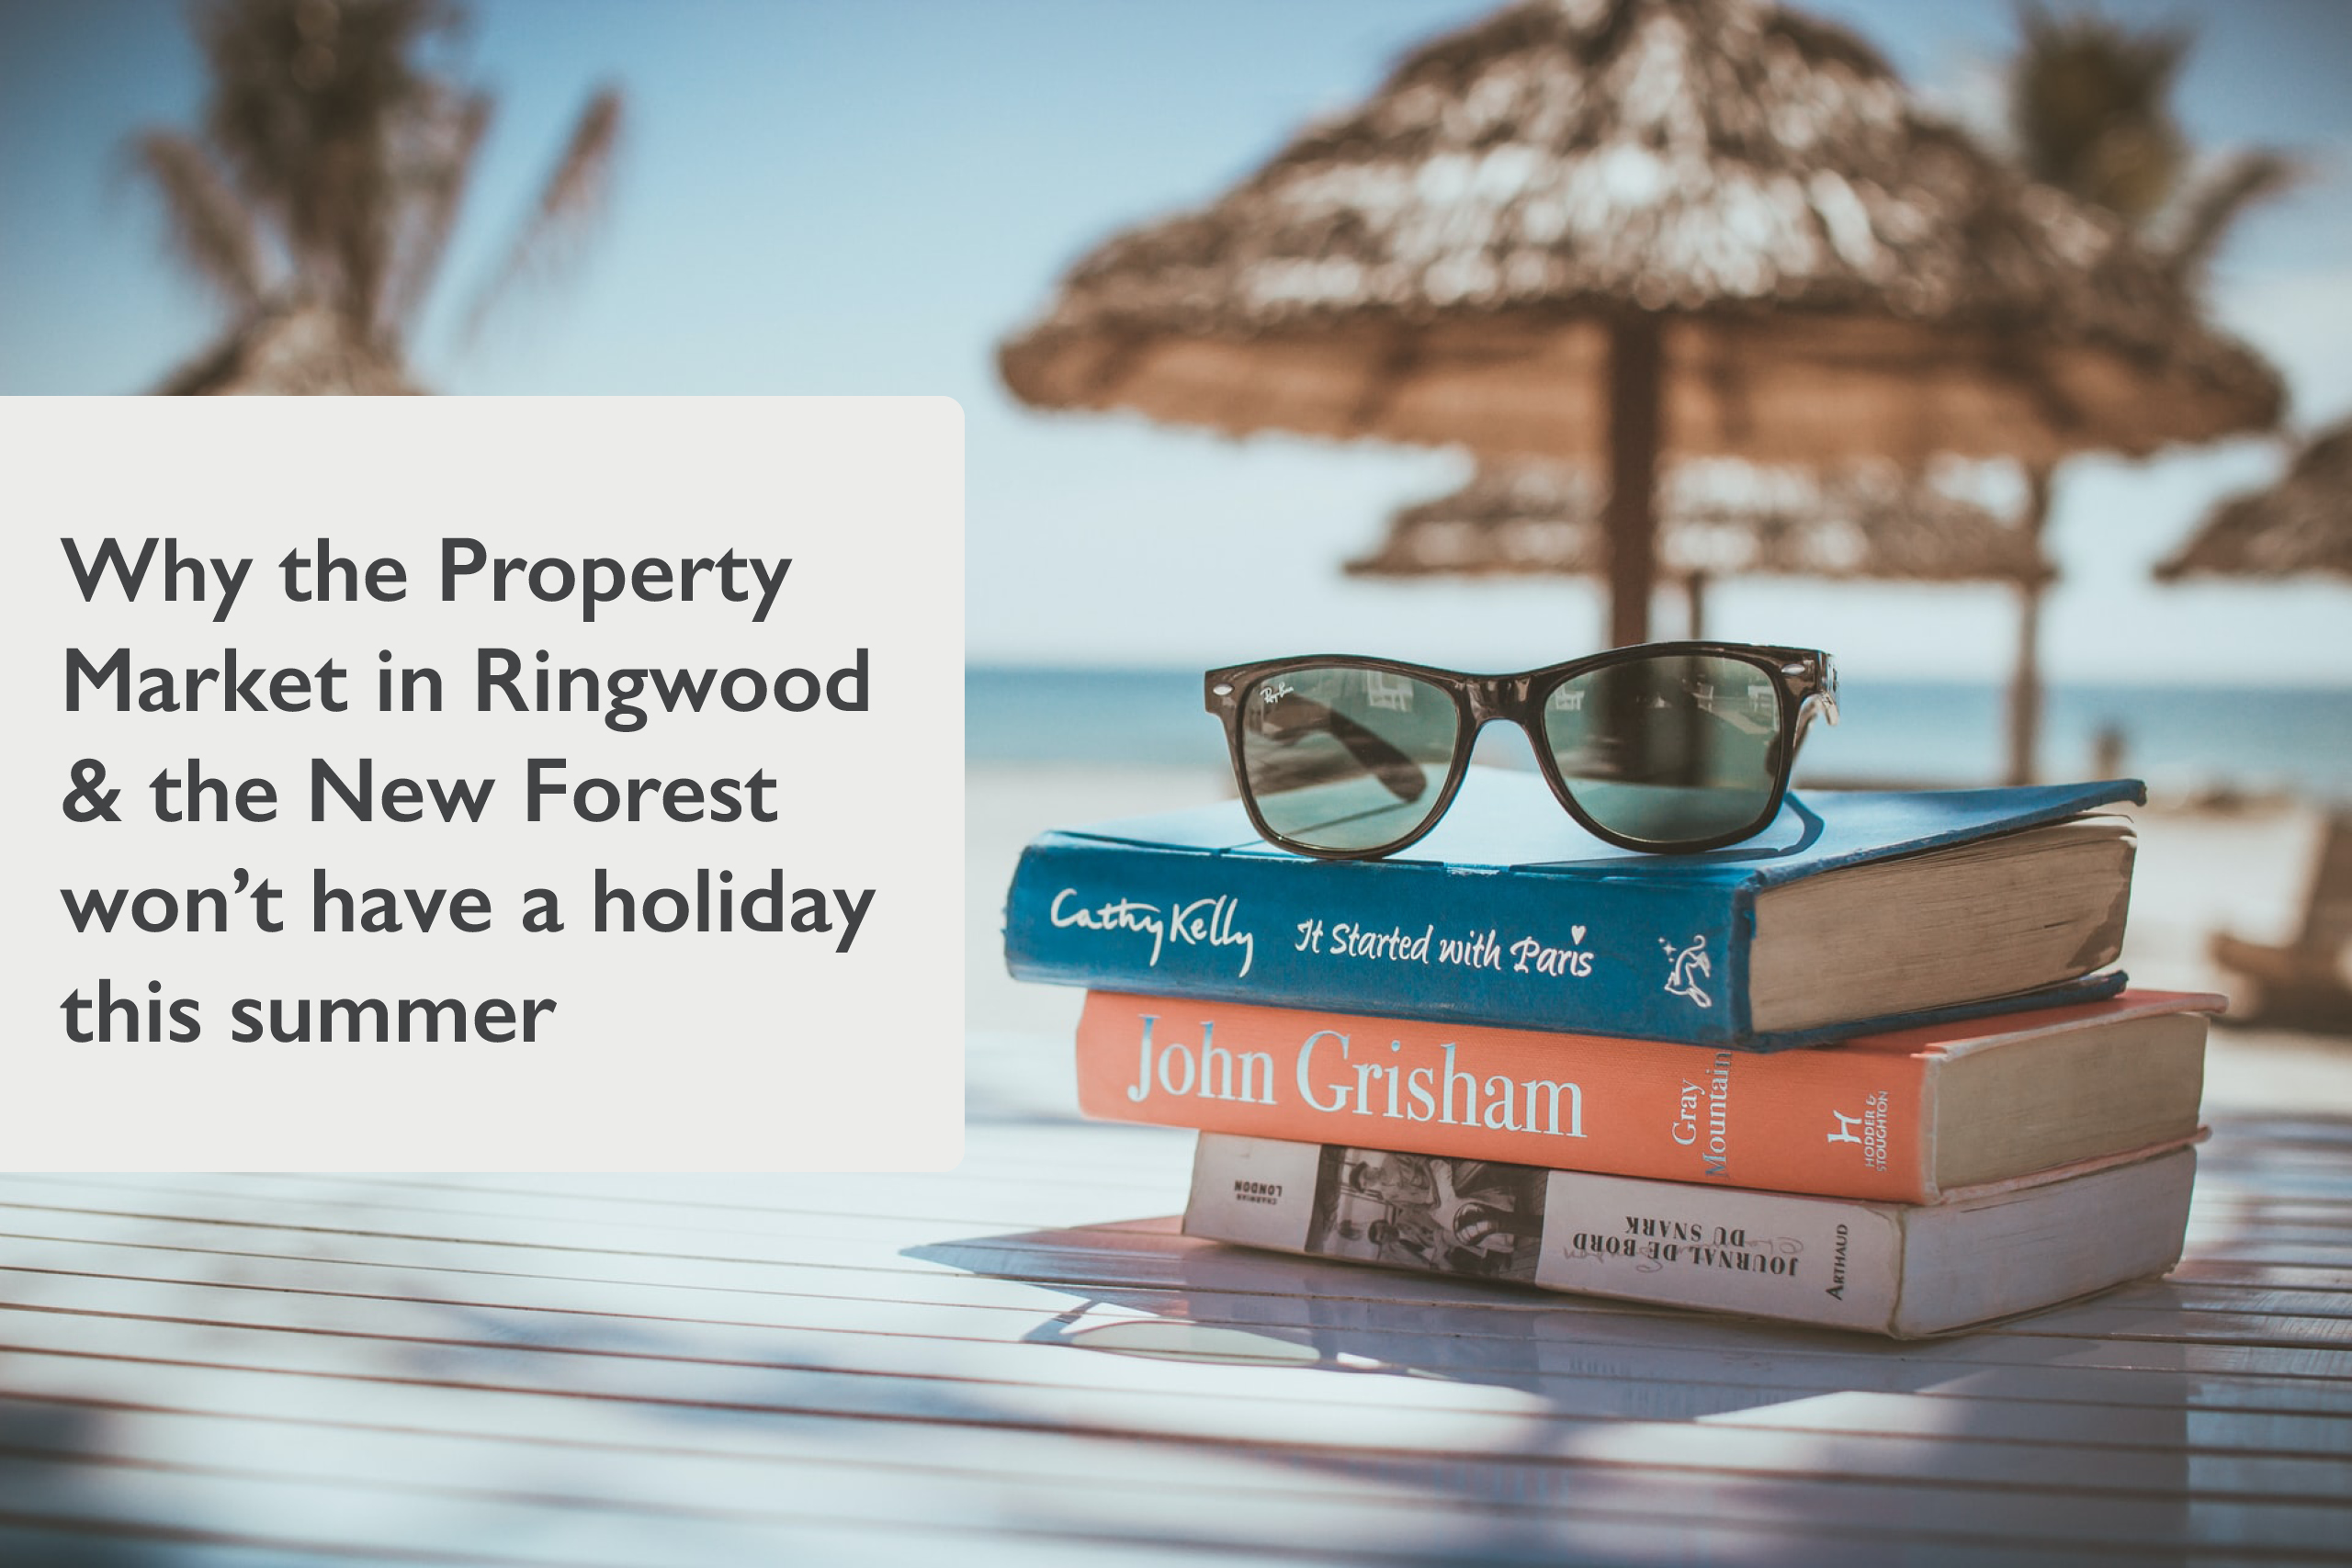 Why the Property Market in Ringwood & the New Forest won't have a holiday this summer